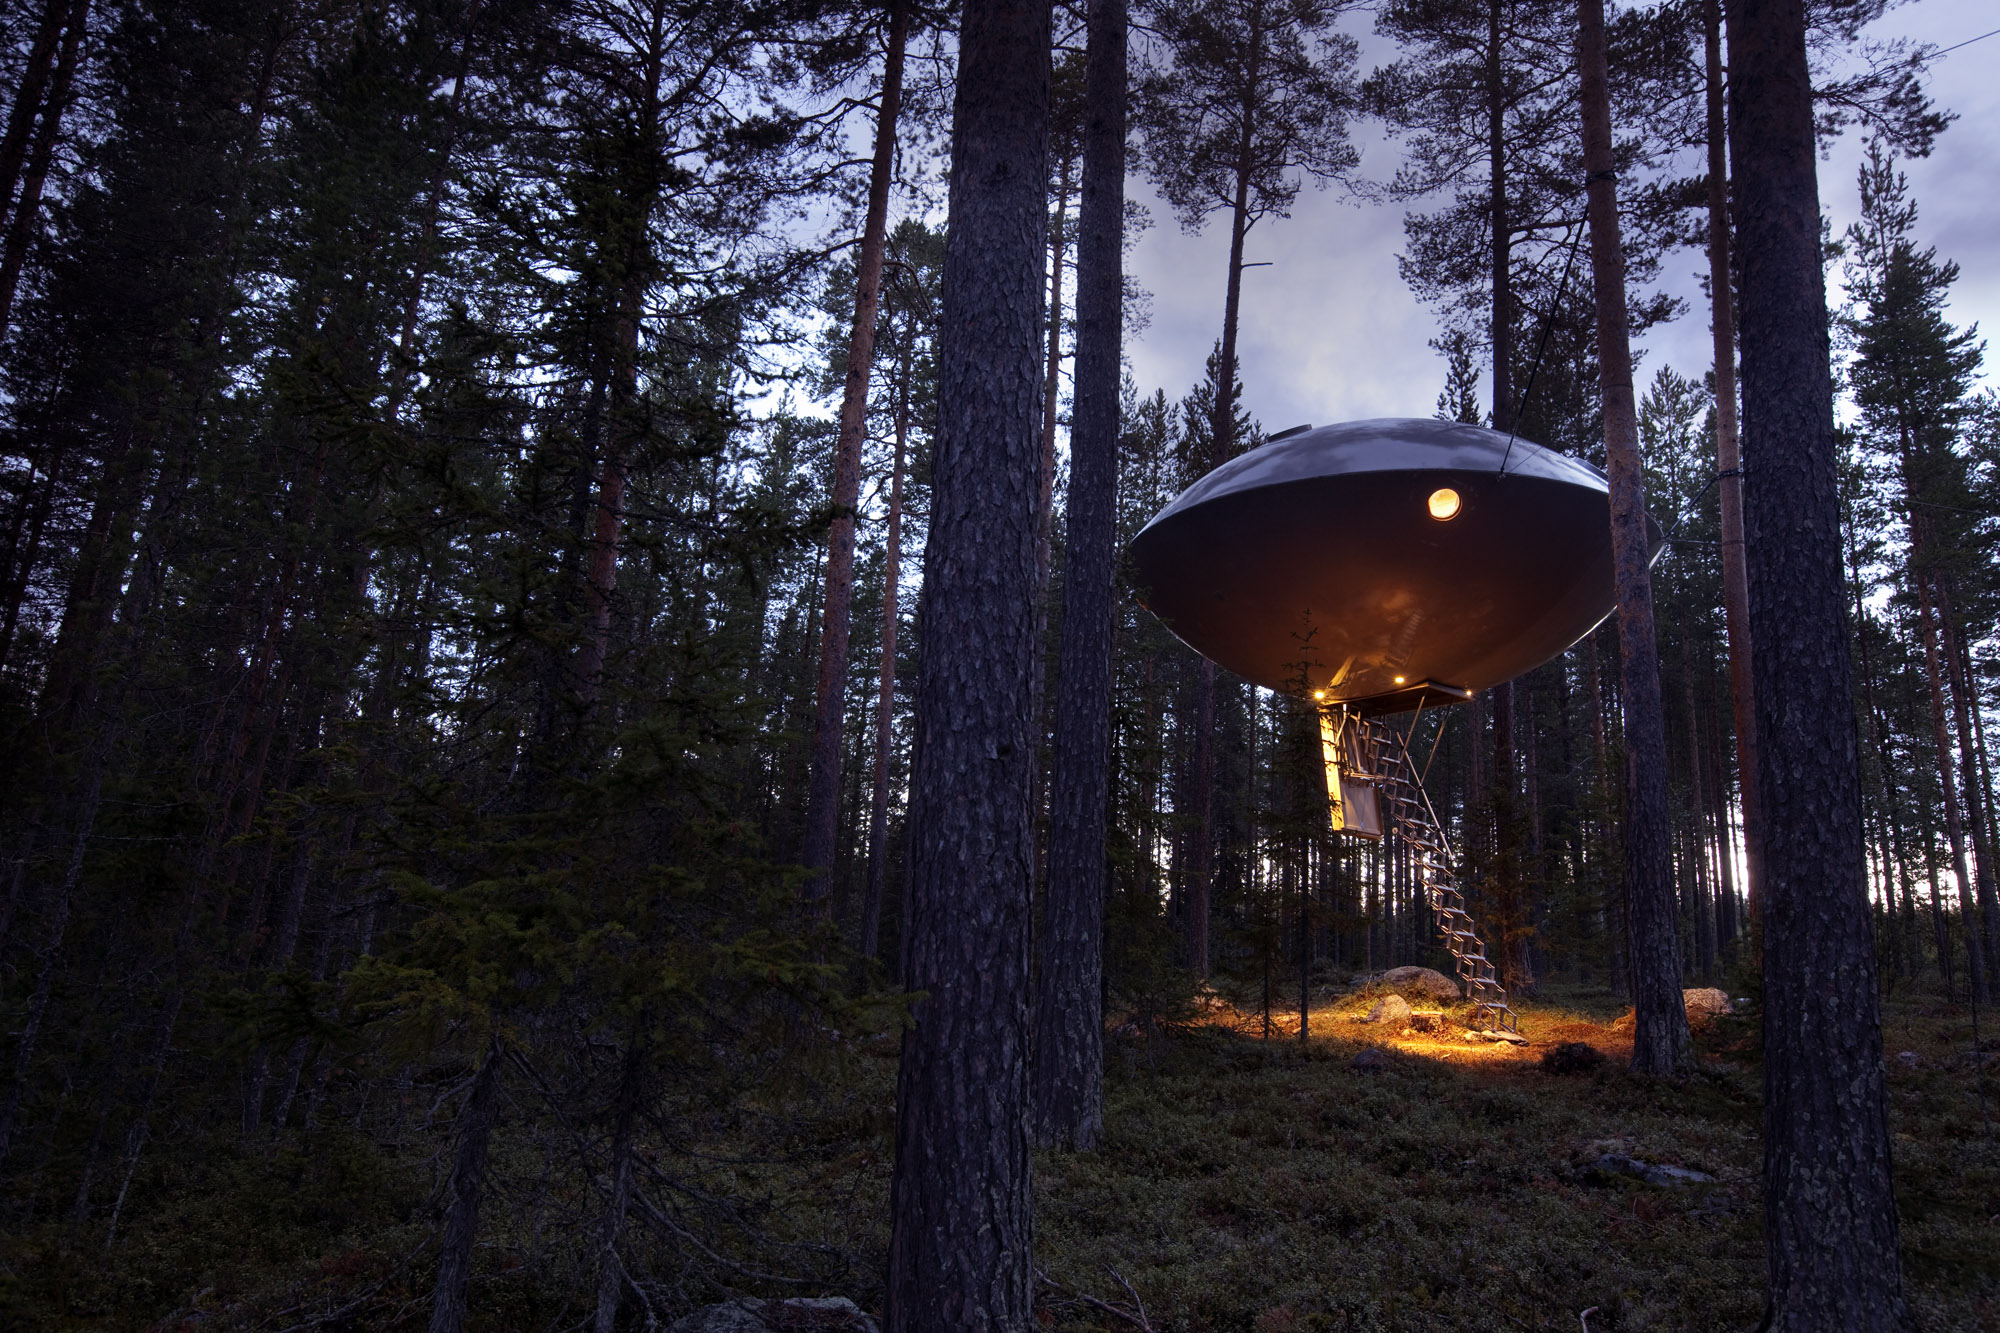 TreeHotel UFO Alternative Accommodations